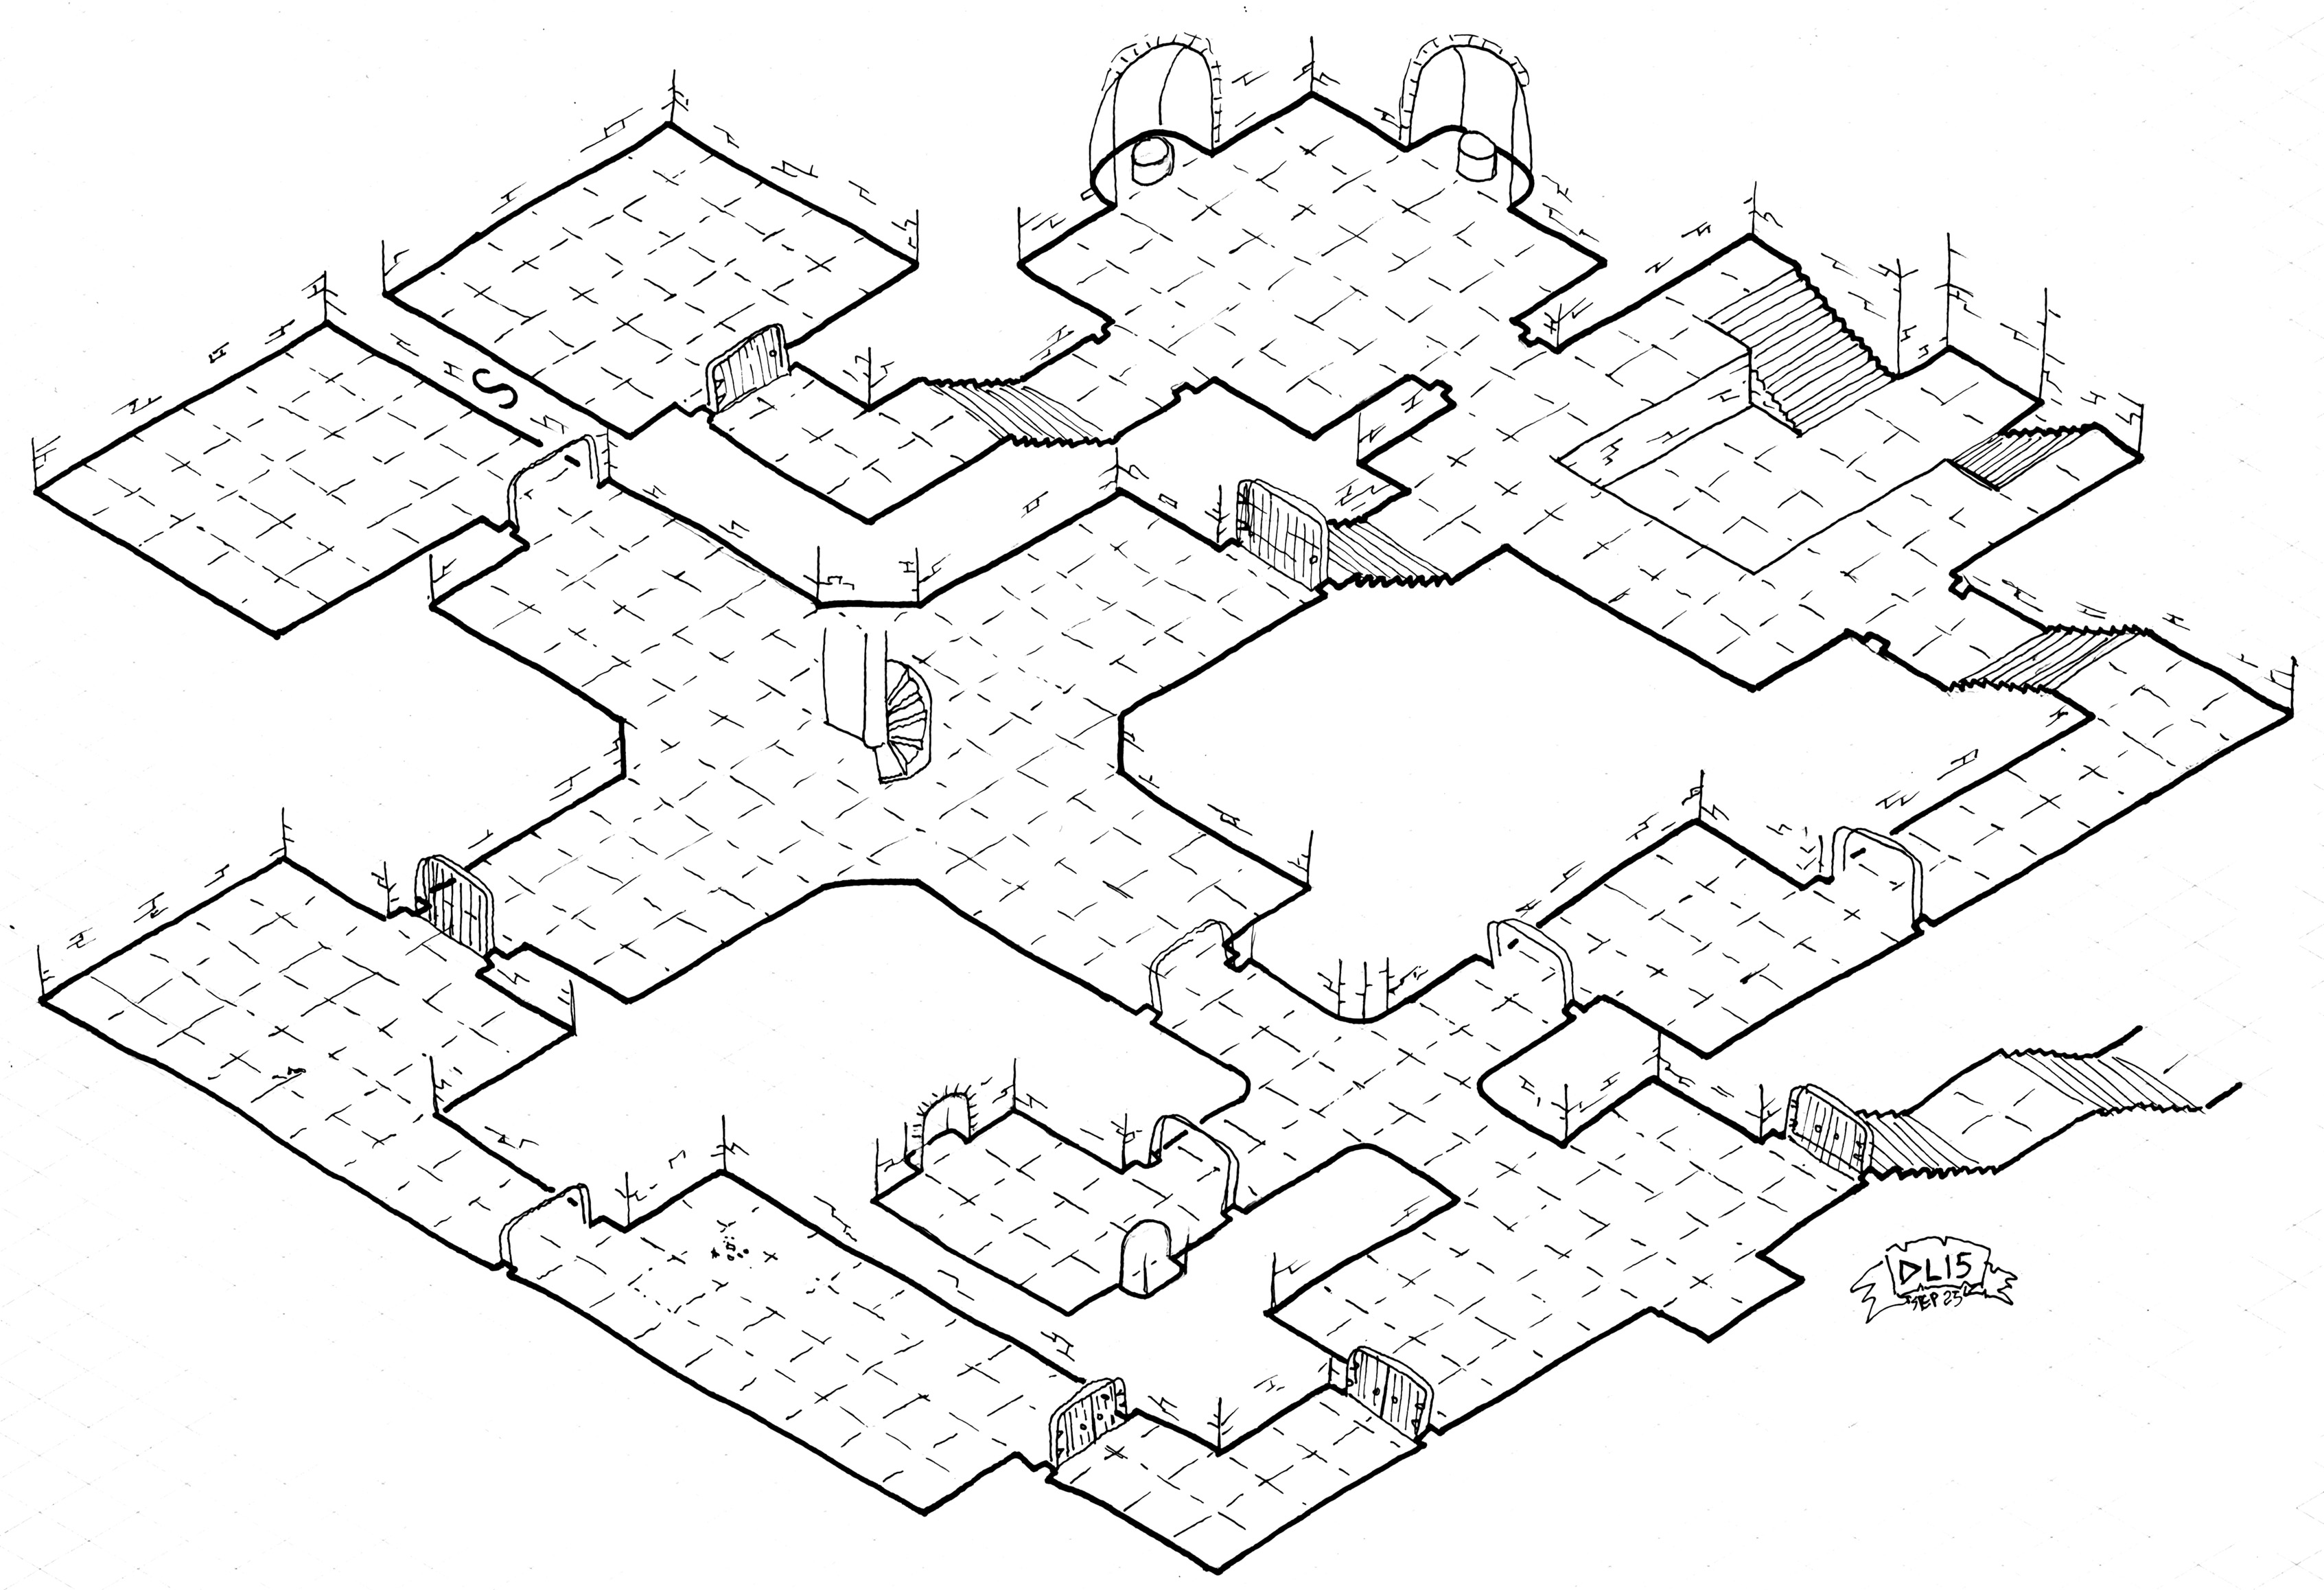 3386x2316 Friday Map] The Architect's Isometric Delve Dyson's Dodecahedron